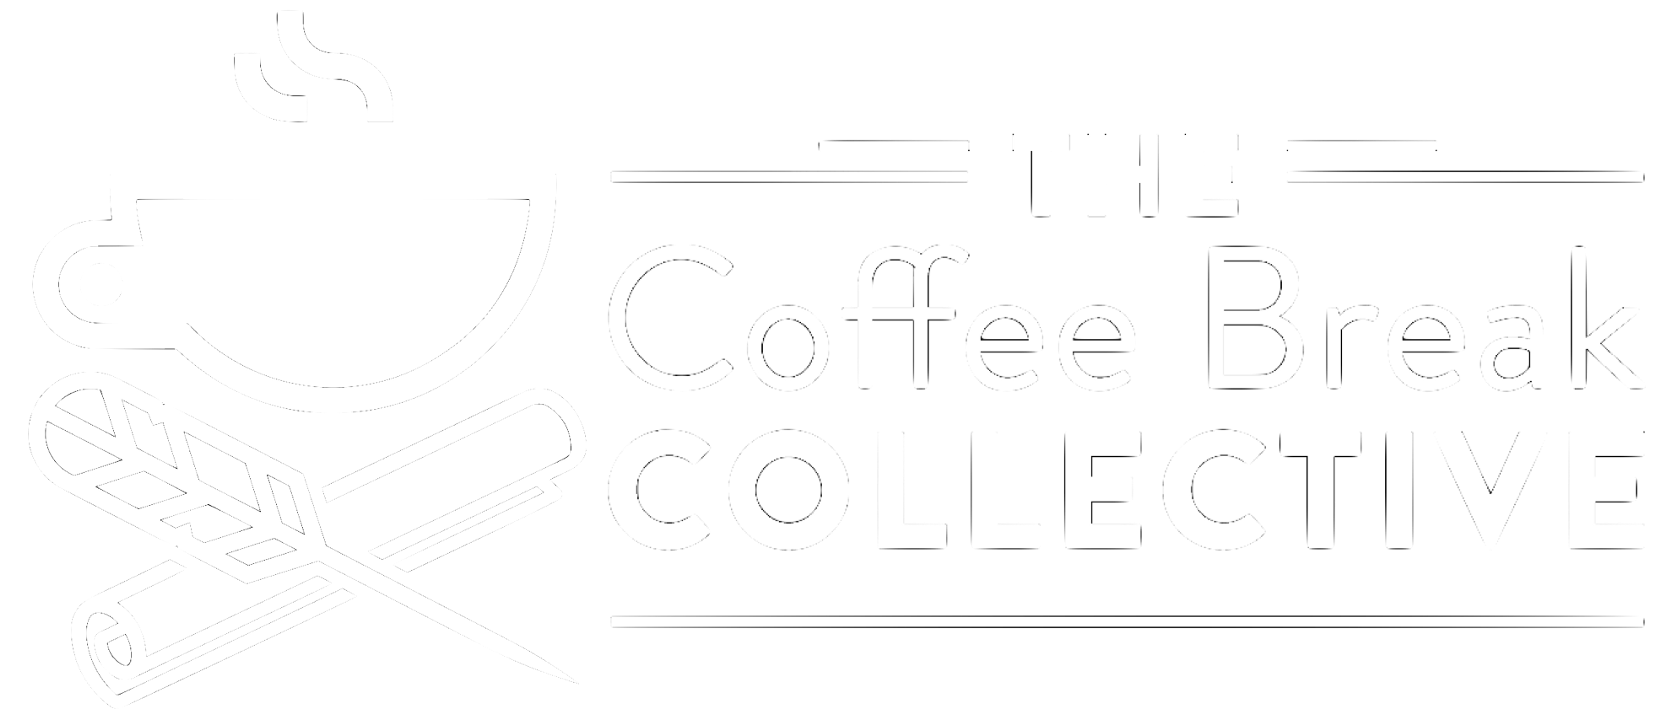 The Coffee Break Collective